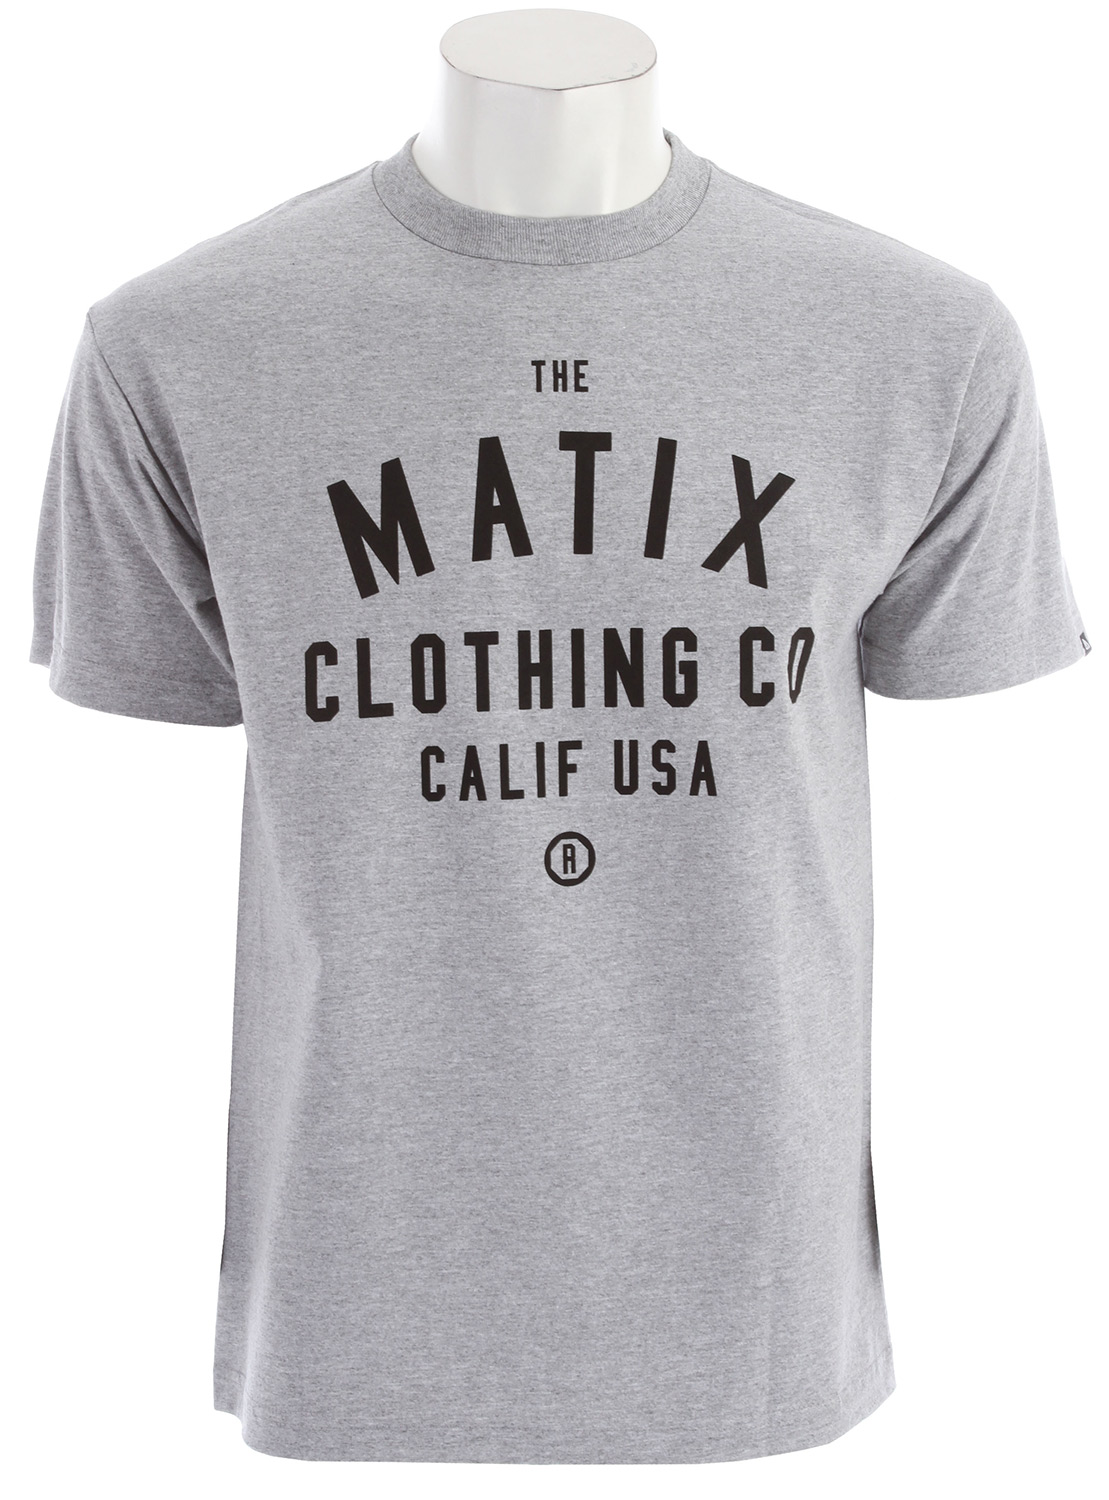 The Matix Calif T-Shirt is a simple, yet interesting shirt that avoids gaudy graphics or images in favor of a balanced text based logo.  A standard fit makes this shirt a great and comfortable option for any guy and the all-cotton construction provides comfort and reliability.  This shirt is a worthy addition to anyone looking for a style upgrade.Key Features of the Matix Calif T-Shirt:  Inkprint with cuff label and Monovert lower left back hit.  Standard Fit.  Material: 100% Cotton - $7.95